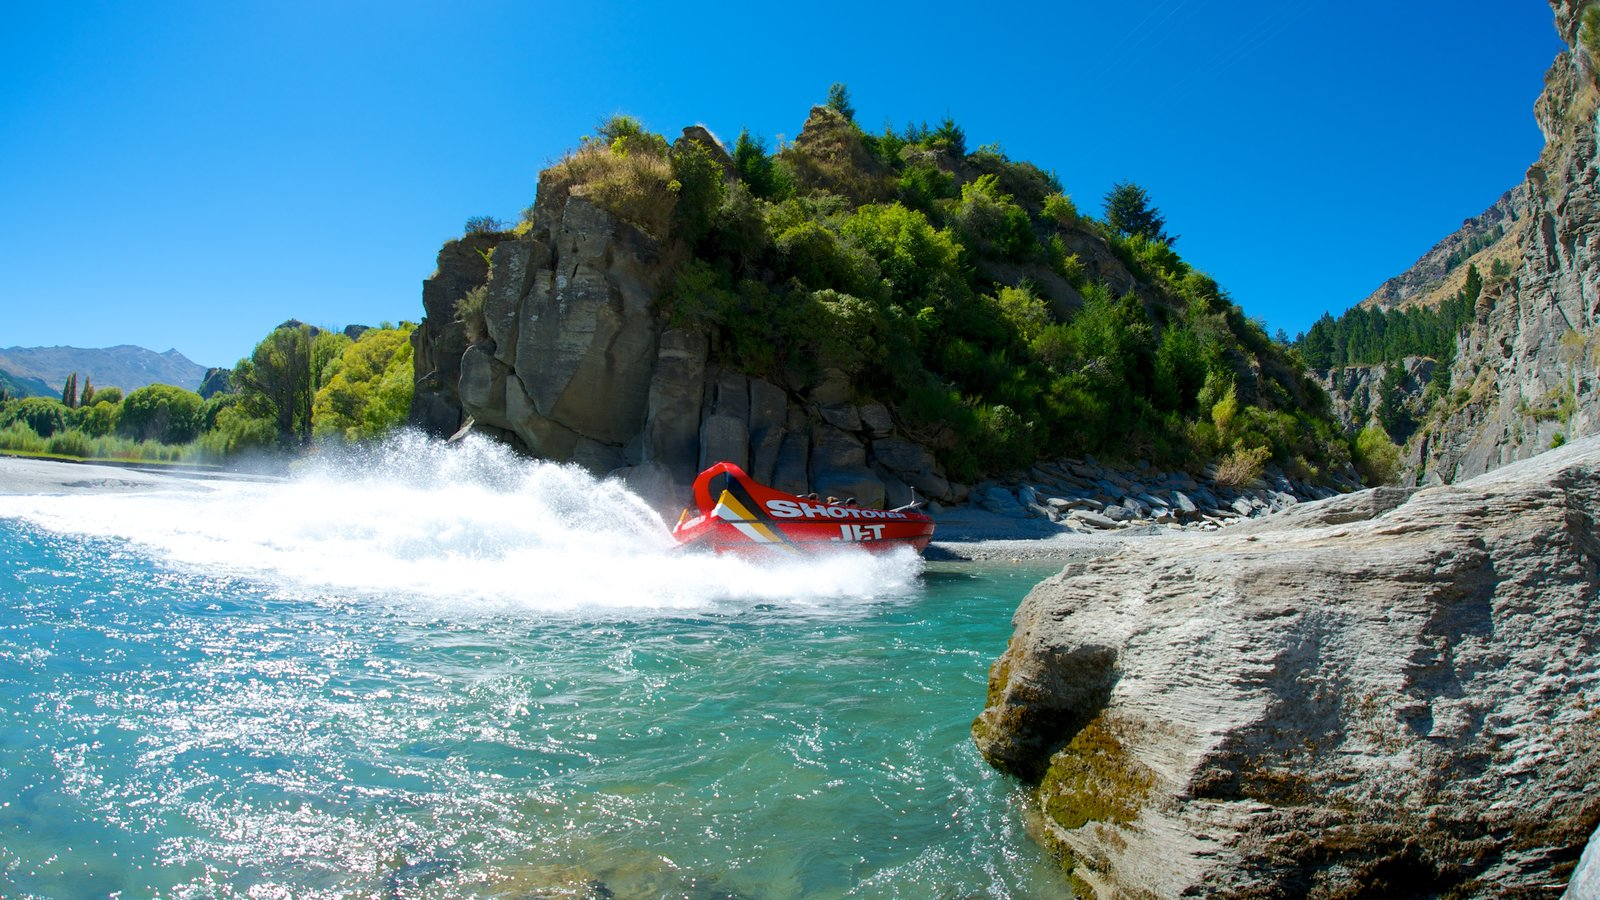 Queenstown which includes rocky coastline and boating